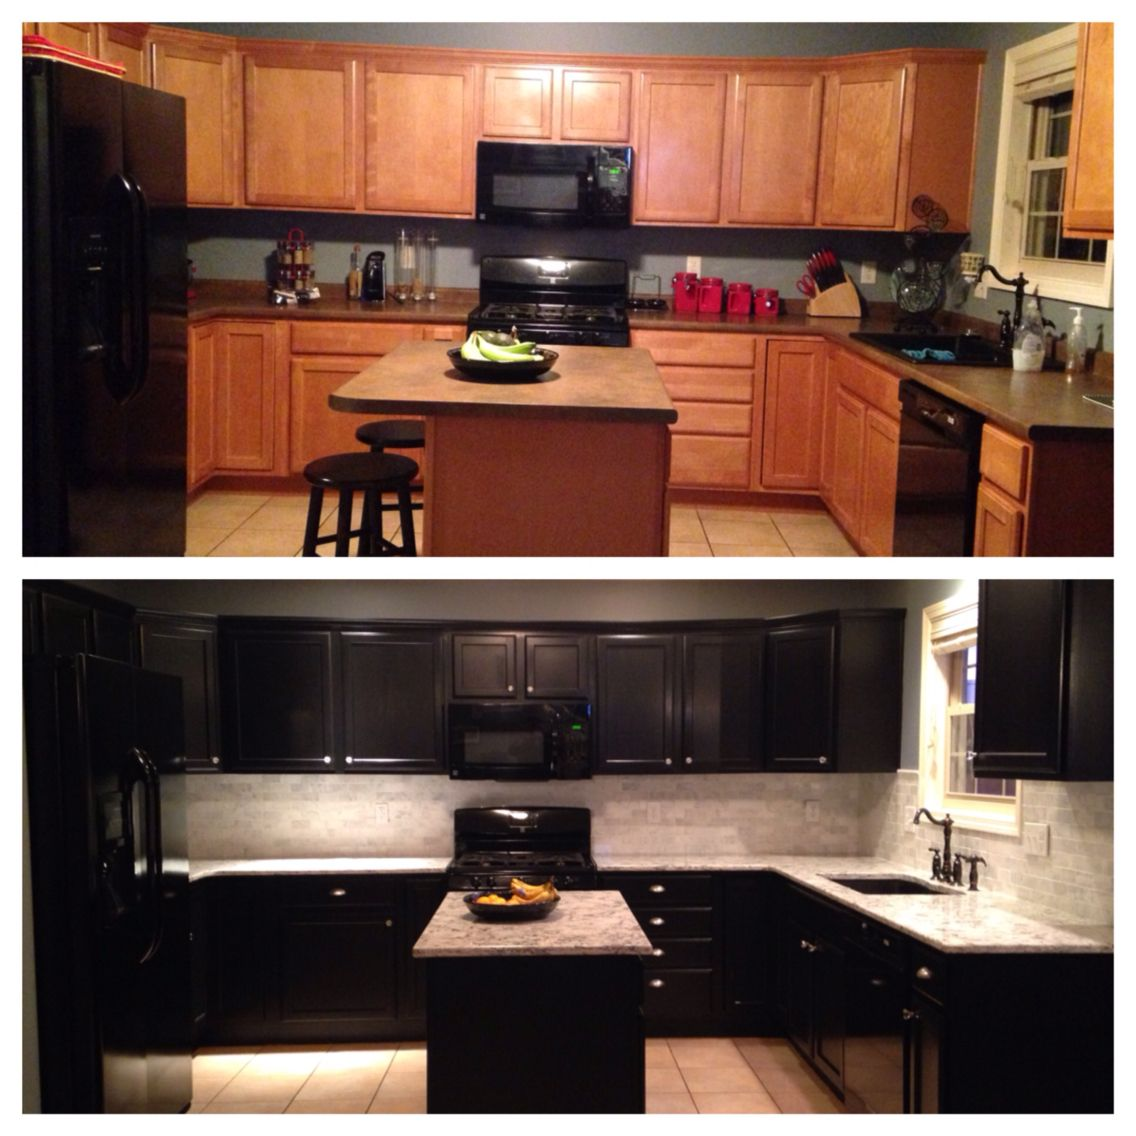 Kitchen Cabinet Stain Ideas: Kitchen Remodel Before And After Kitchen Cabinets Stained